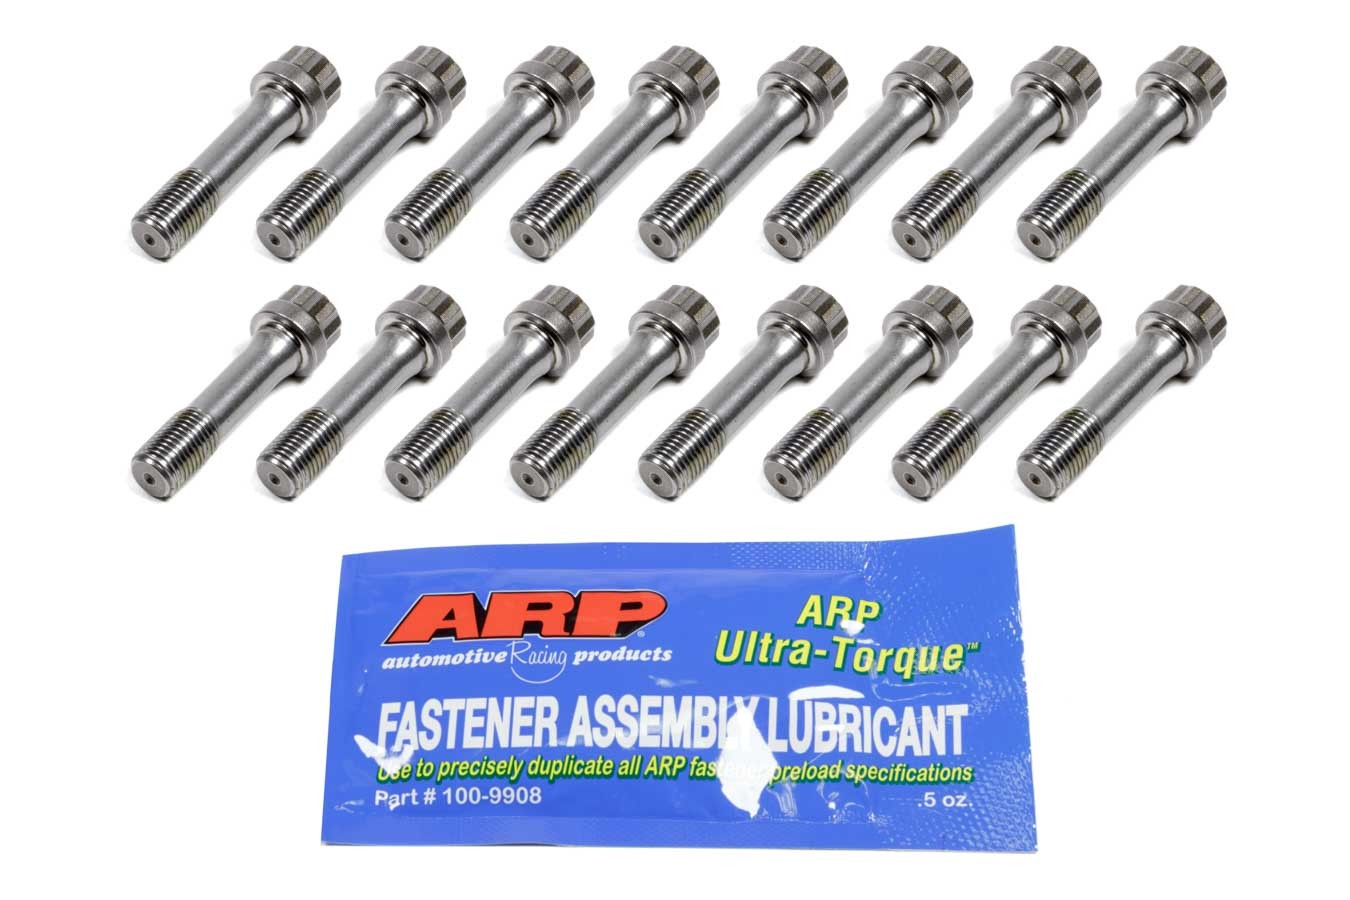 Eagle Connecting Rod Bolts - 8740 3/8 x 1.500 (16)